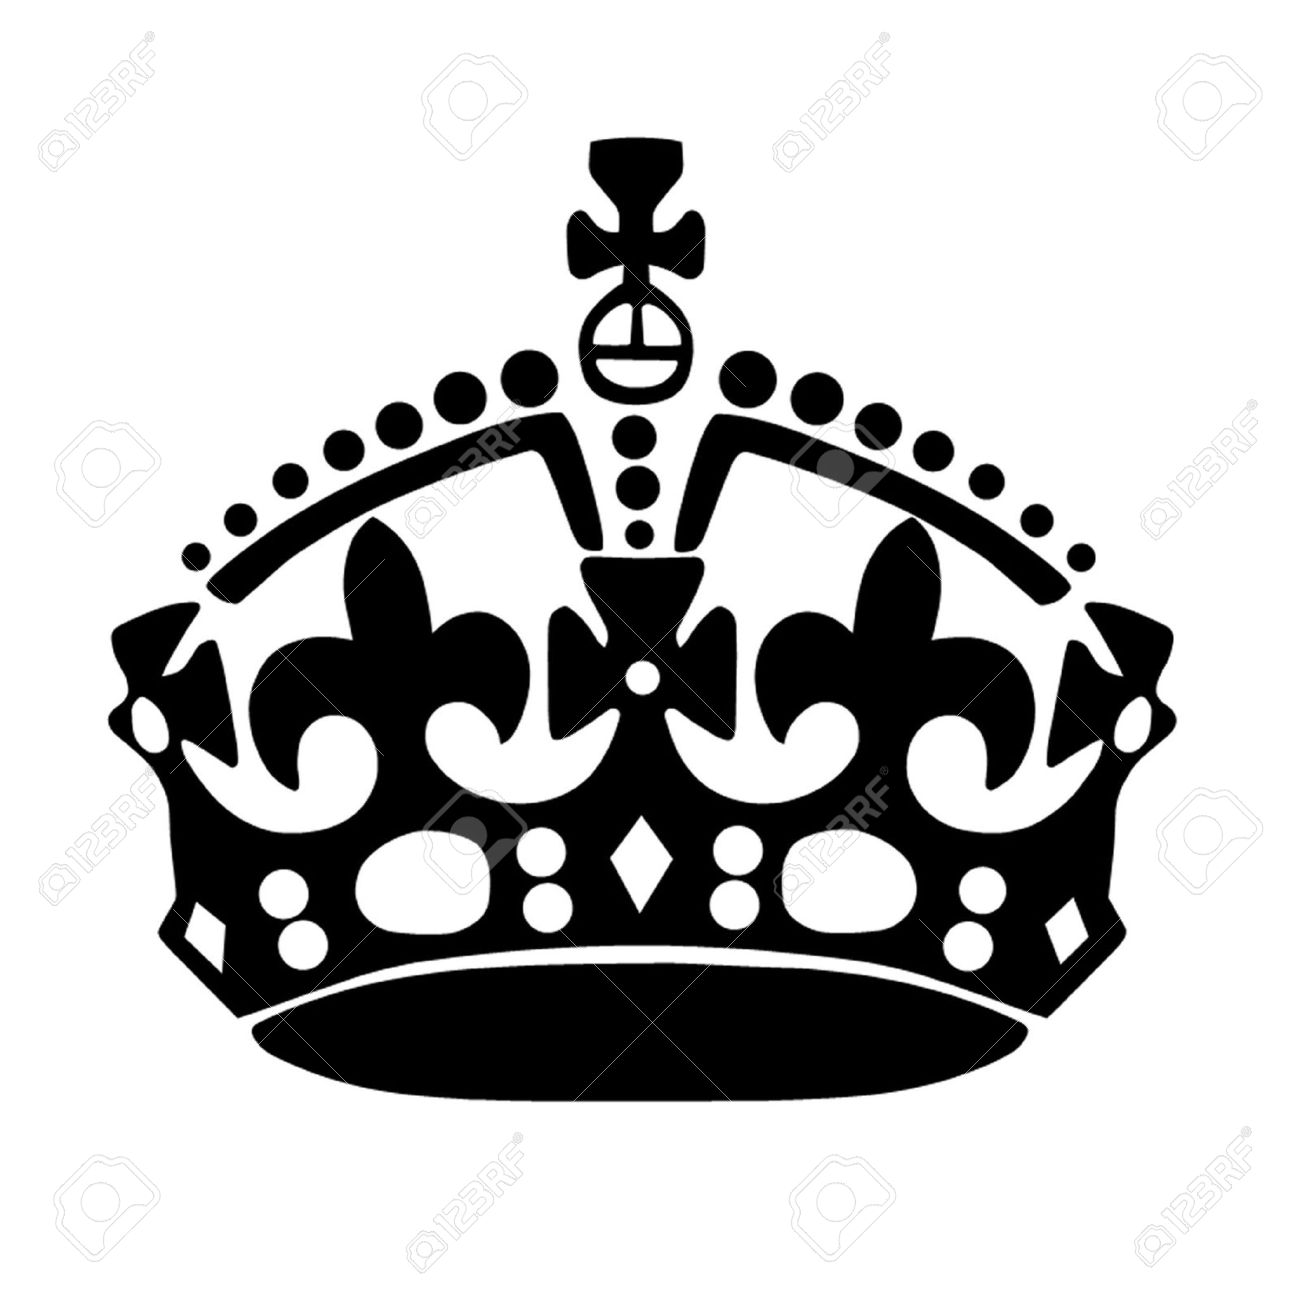 keep calm crown royalty free cliparts vectors and stock rh 123rf com keep calm logo generator